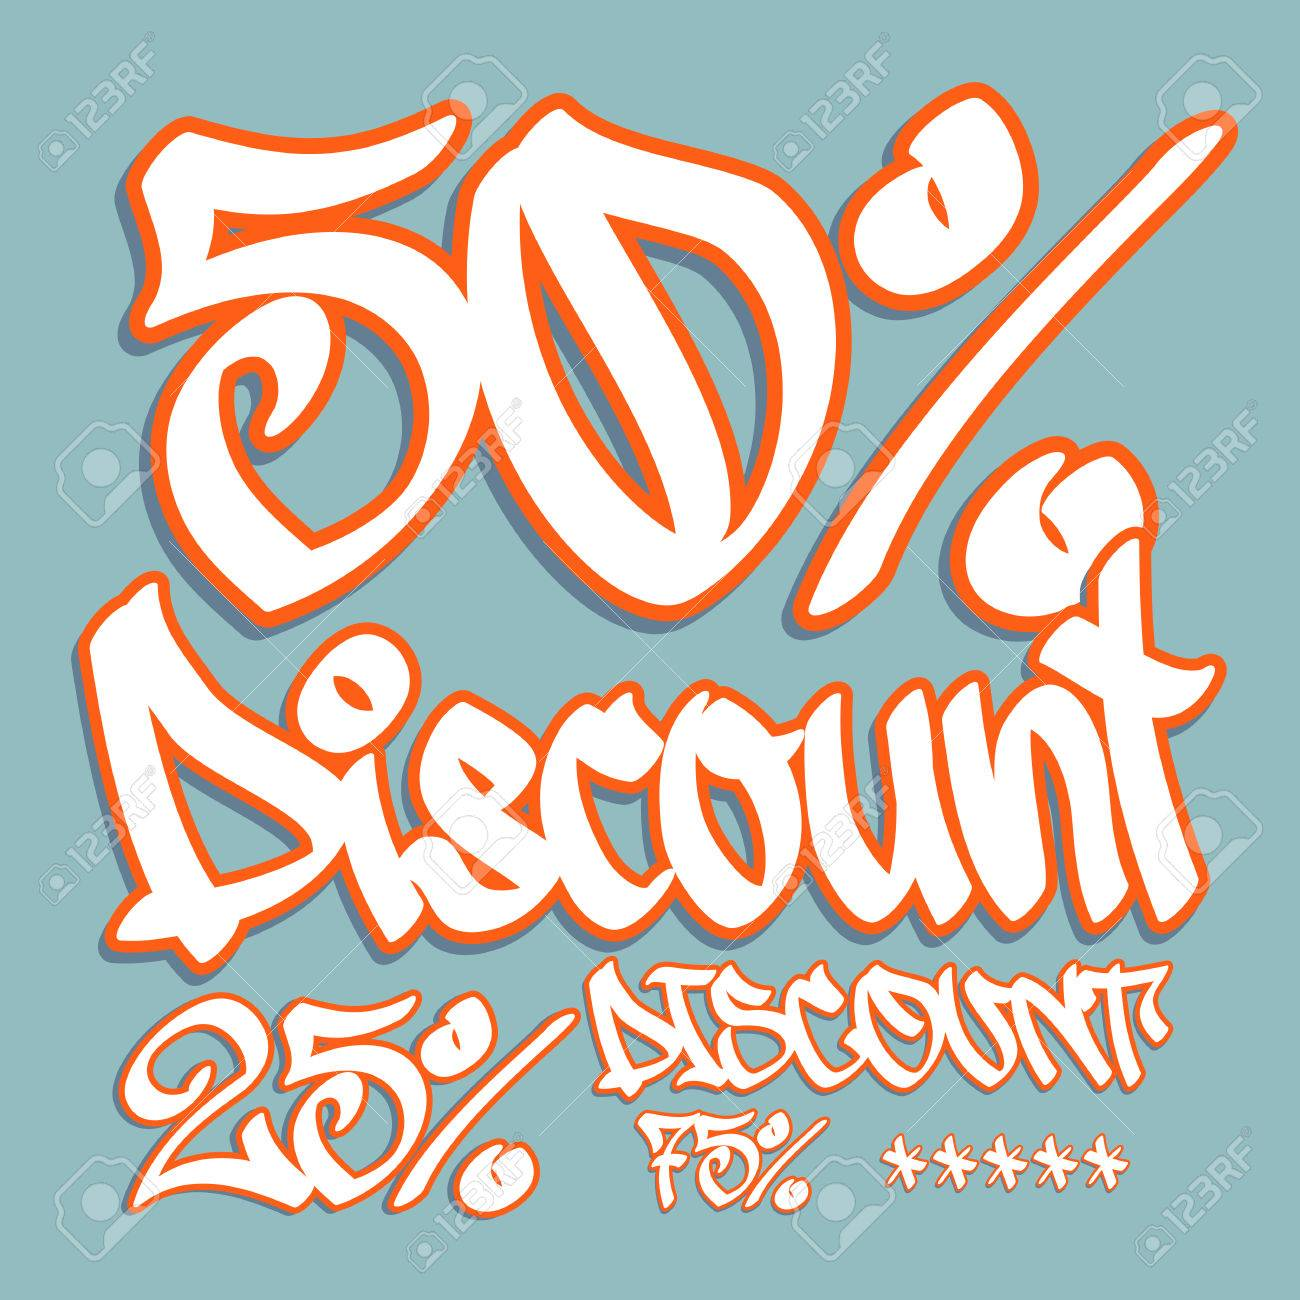 Fifty Percent Discount Tag In Graffiti Style